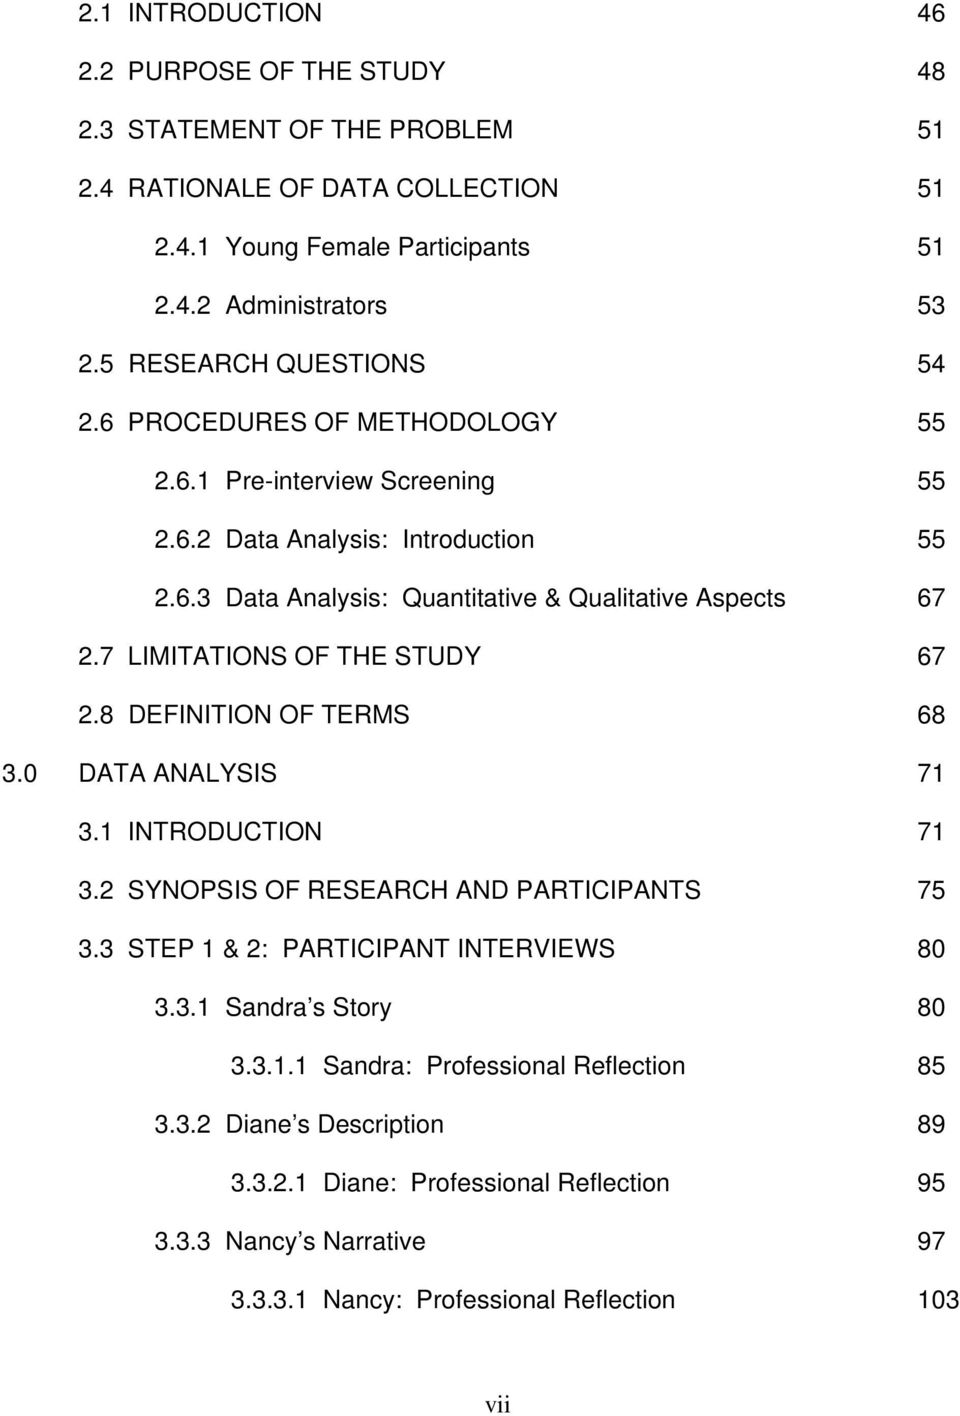 7 LIMITATIONS OF THE STUDY 67 2.8 DEFINITION OF TERMS 68 3.0 DATA ANALYSIS 71 3.1 INTRODUCTION 71 3.2 SYNOPSIS OF RESEARCH AND PARTICIPANTS 75 3.3 STEP 1 & 2: PARTICIPANT INTERVIEWS 80 3.3.1 Sandra s Story 80 3.